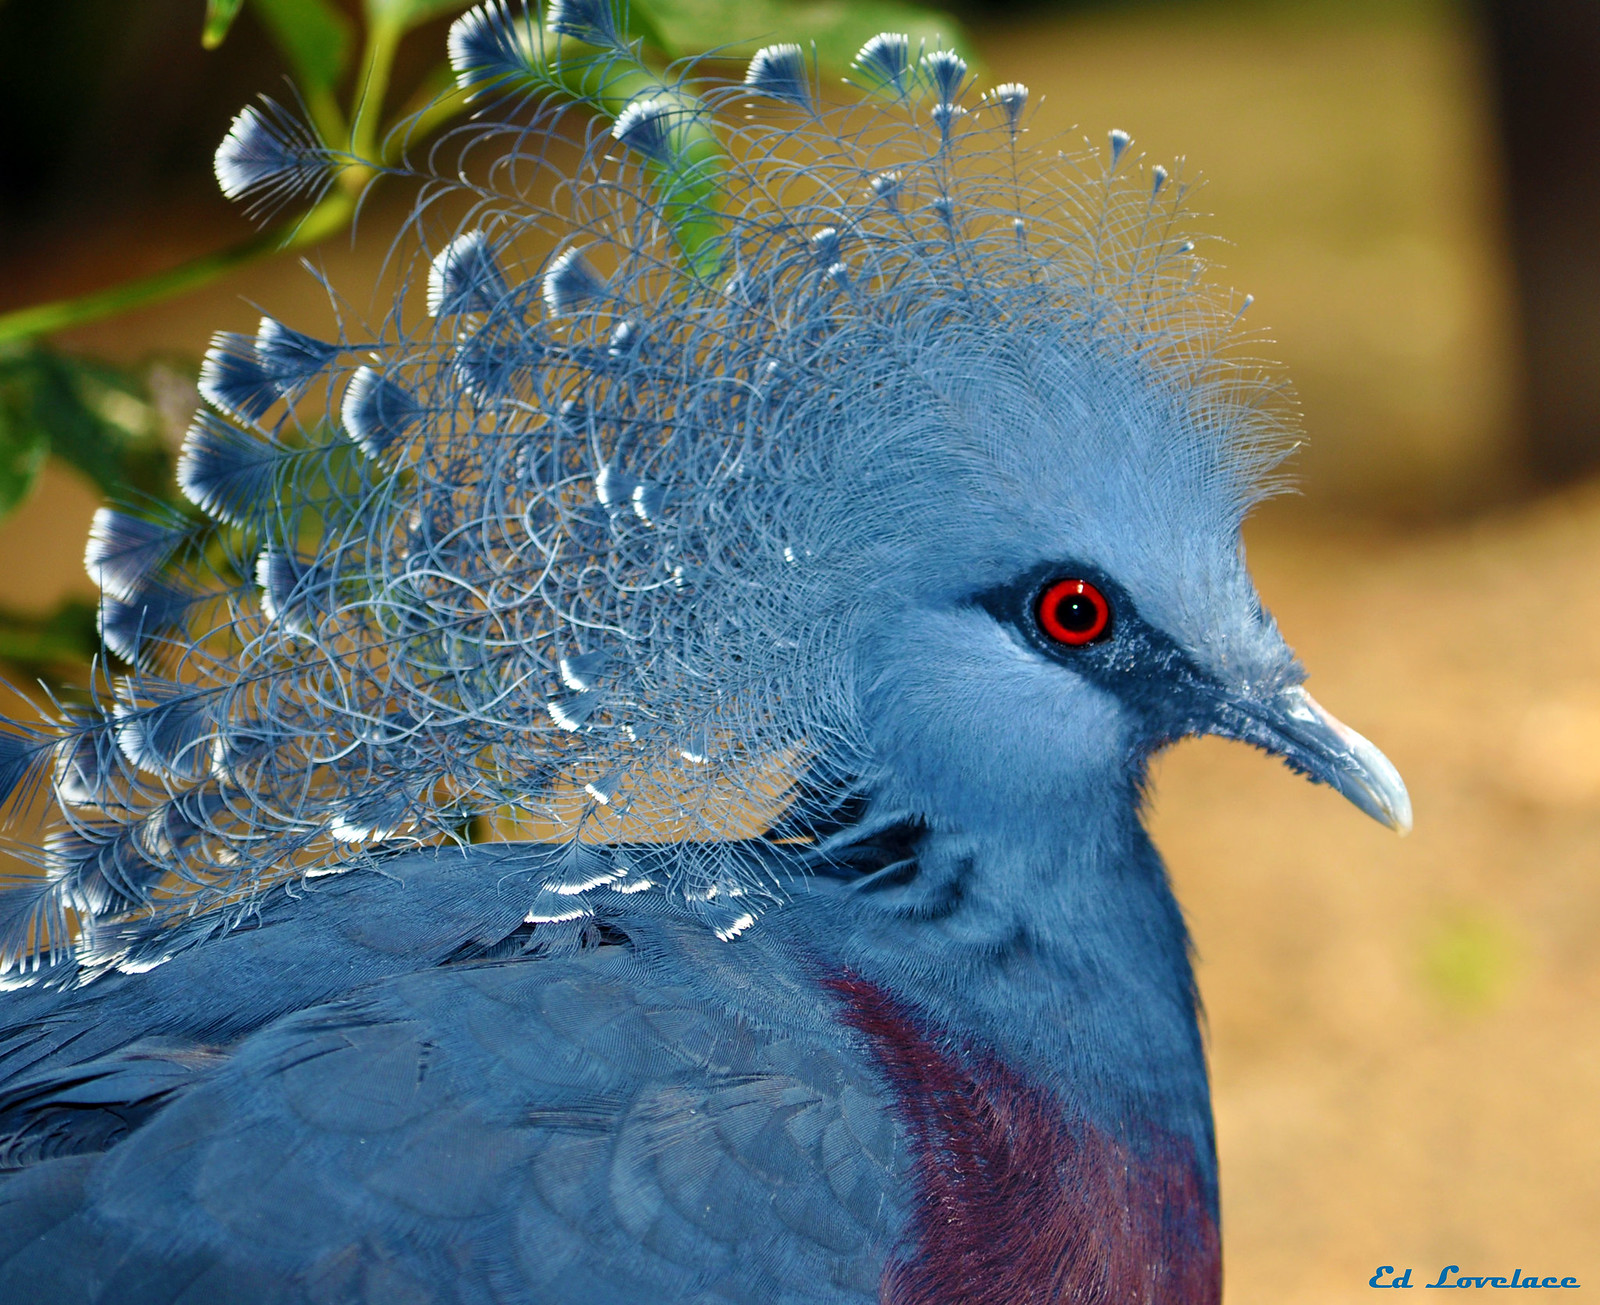 Pigeon on Pholder | 1000+ Pigeon images that made the ...